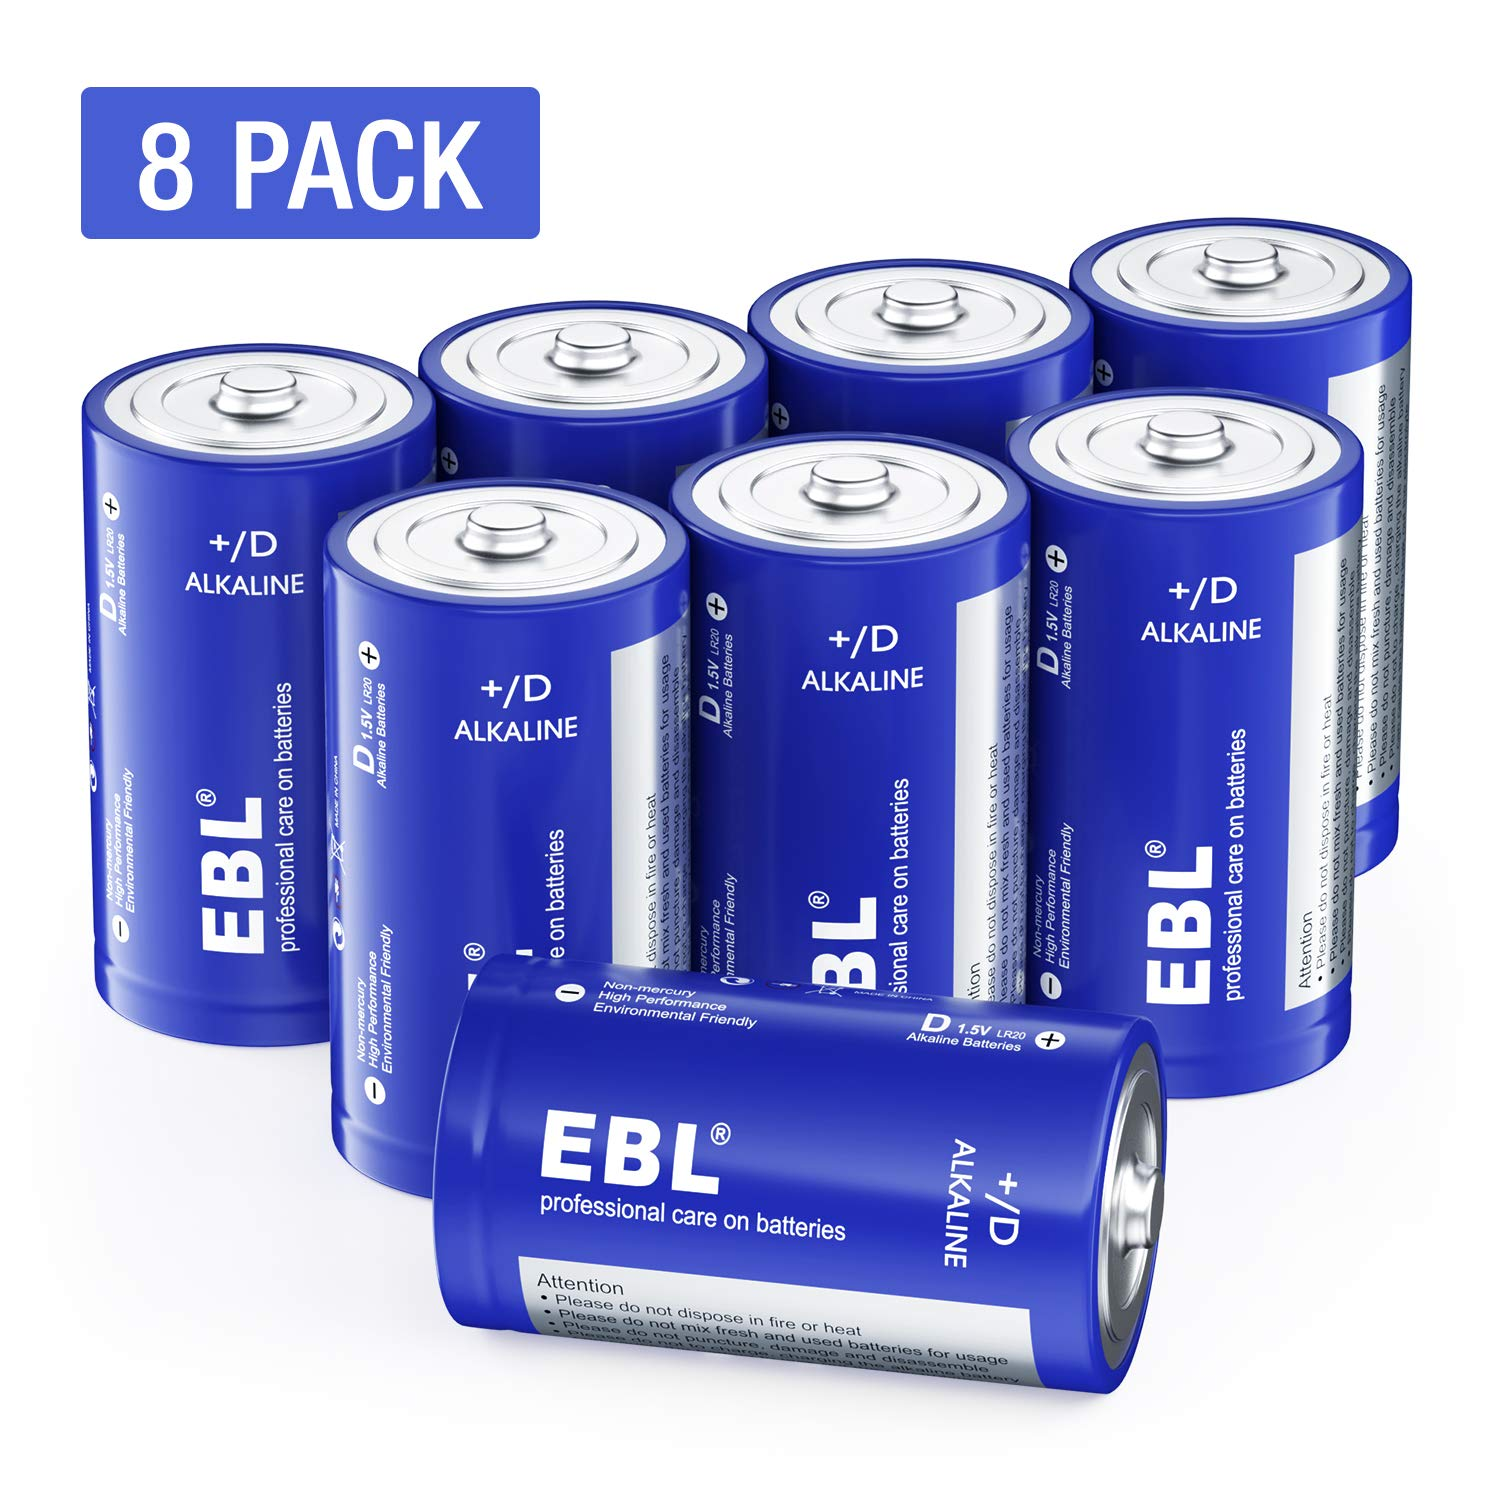 EBL D Batteries Alkaline D Batteries - Durable 1.5V D Alkaline Batteries for Flashlight, Toys, Camera, LED Candle(Pack of 8)